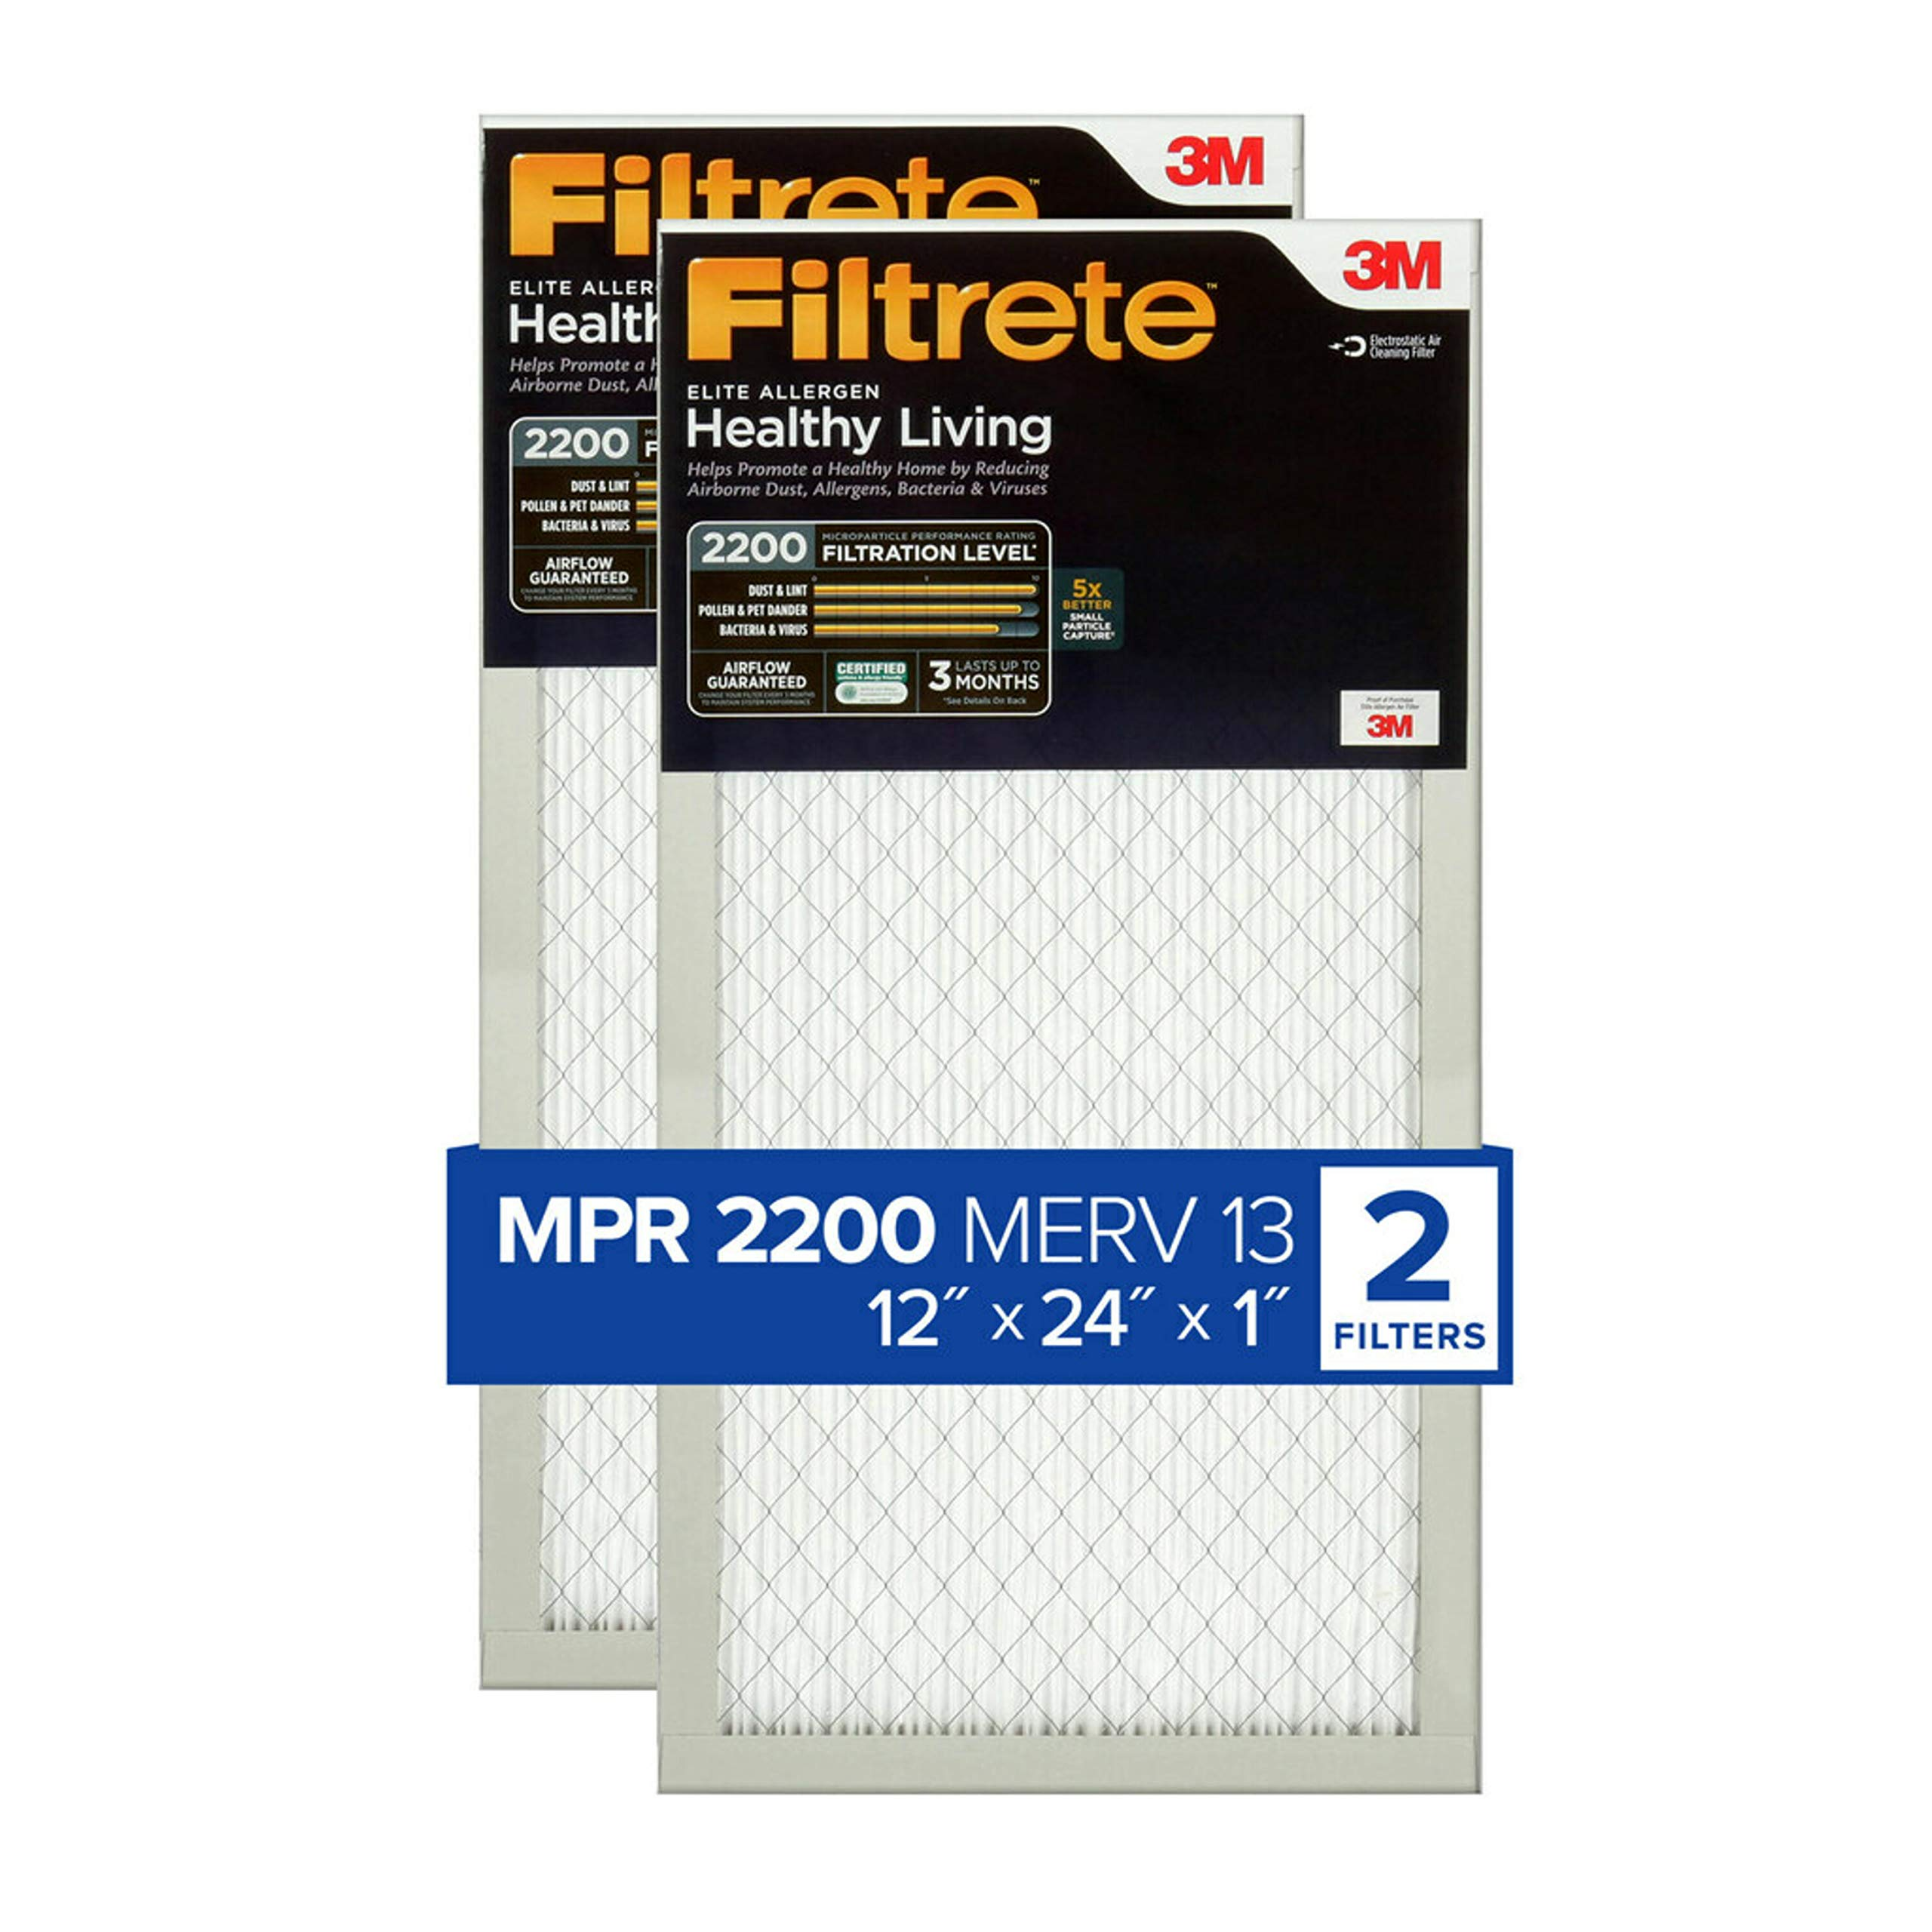 Nordic Pure 20x25x1 MPR 2200 Healthy Living Elite Allergen Replacement AC Furnace Air Filters 3 Pack